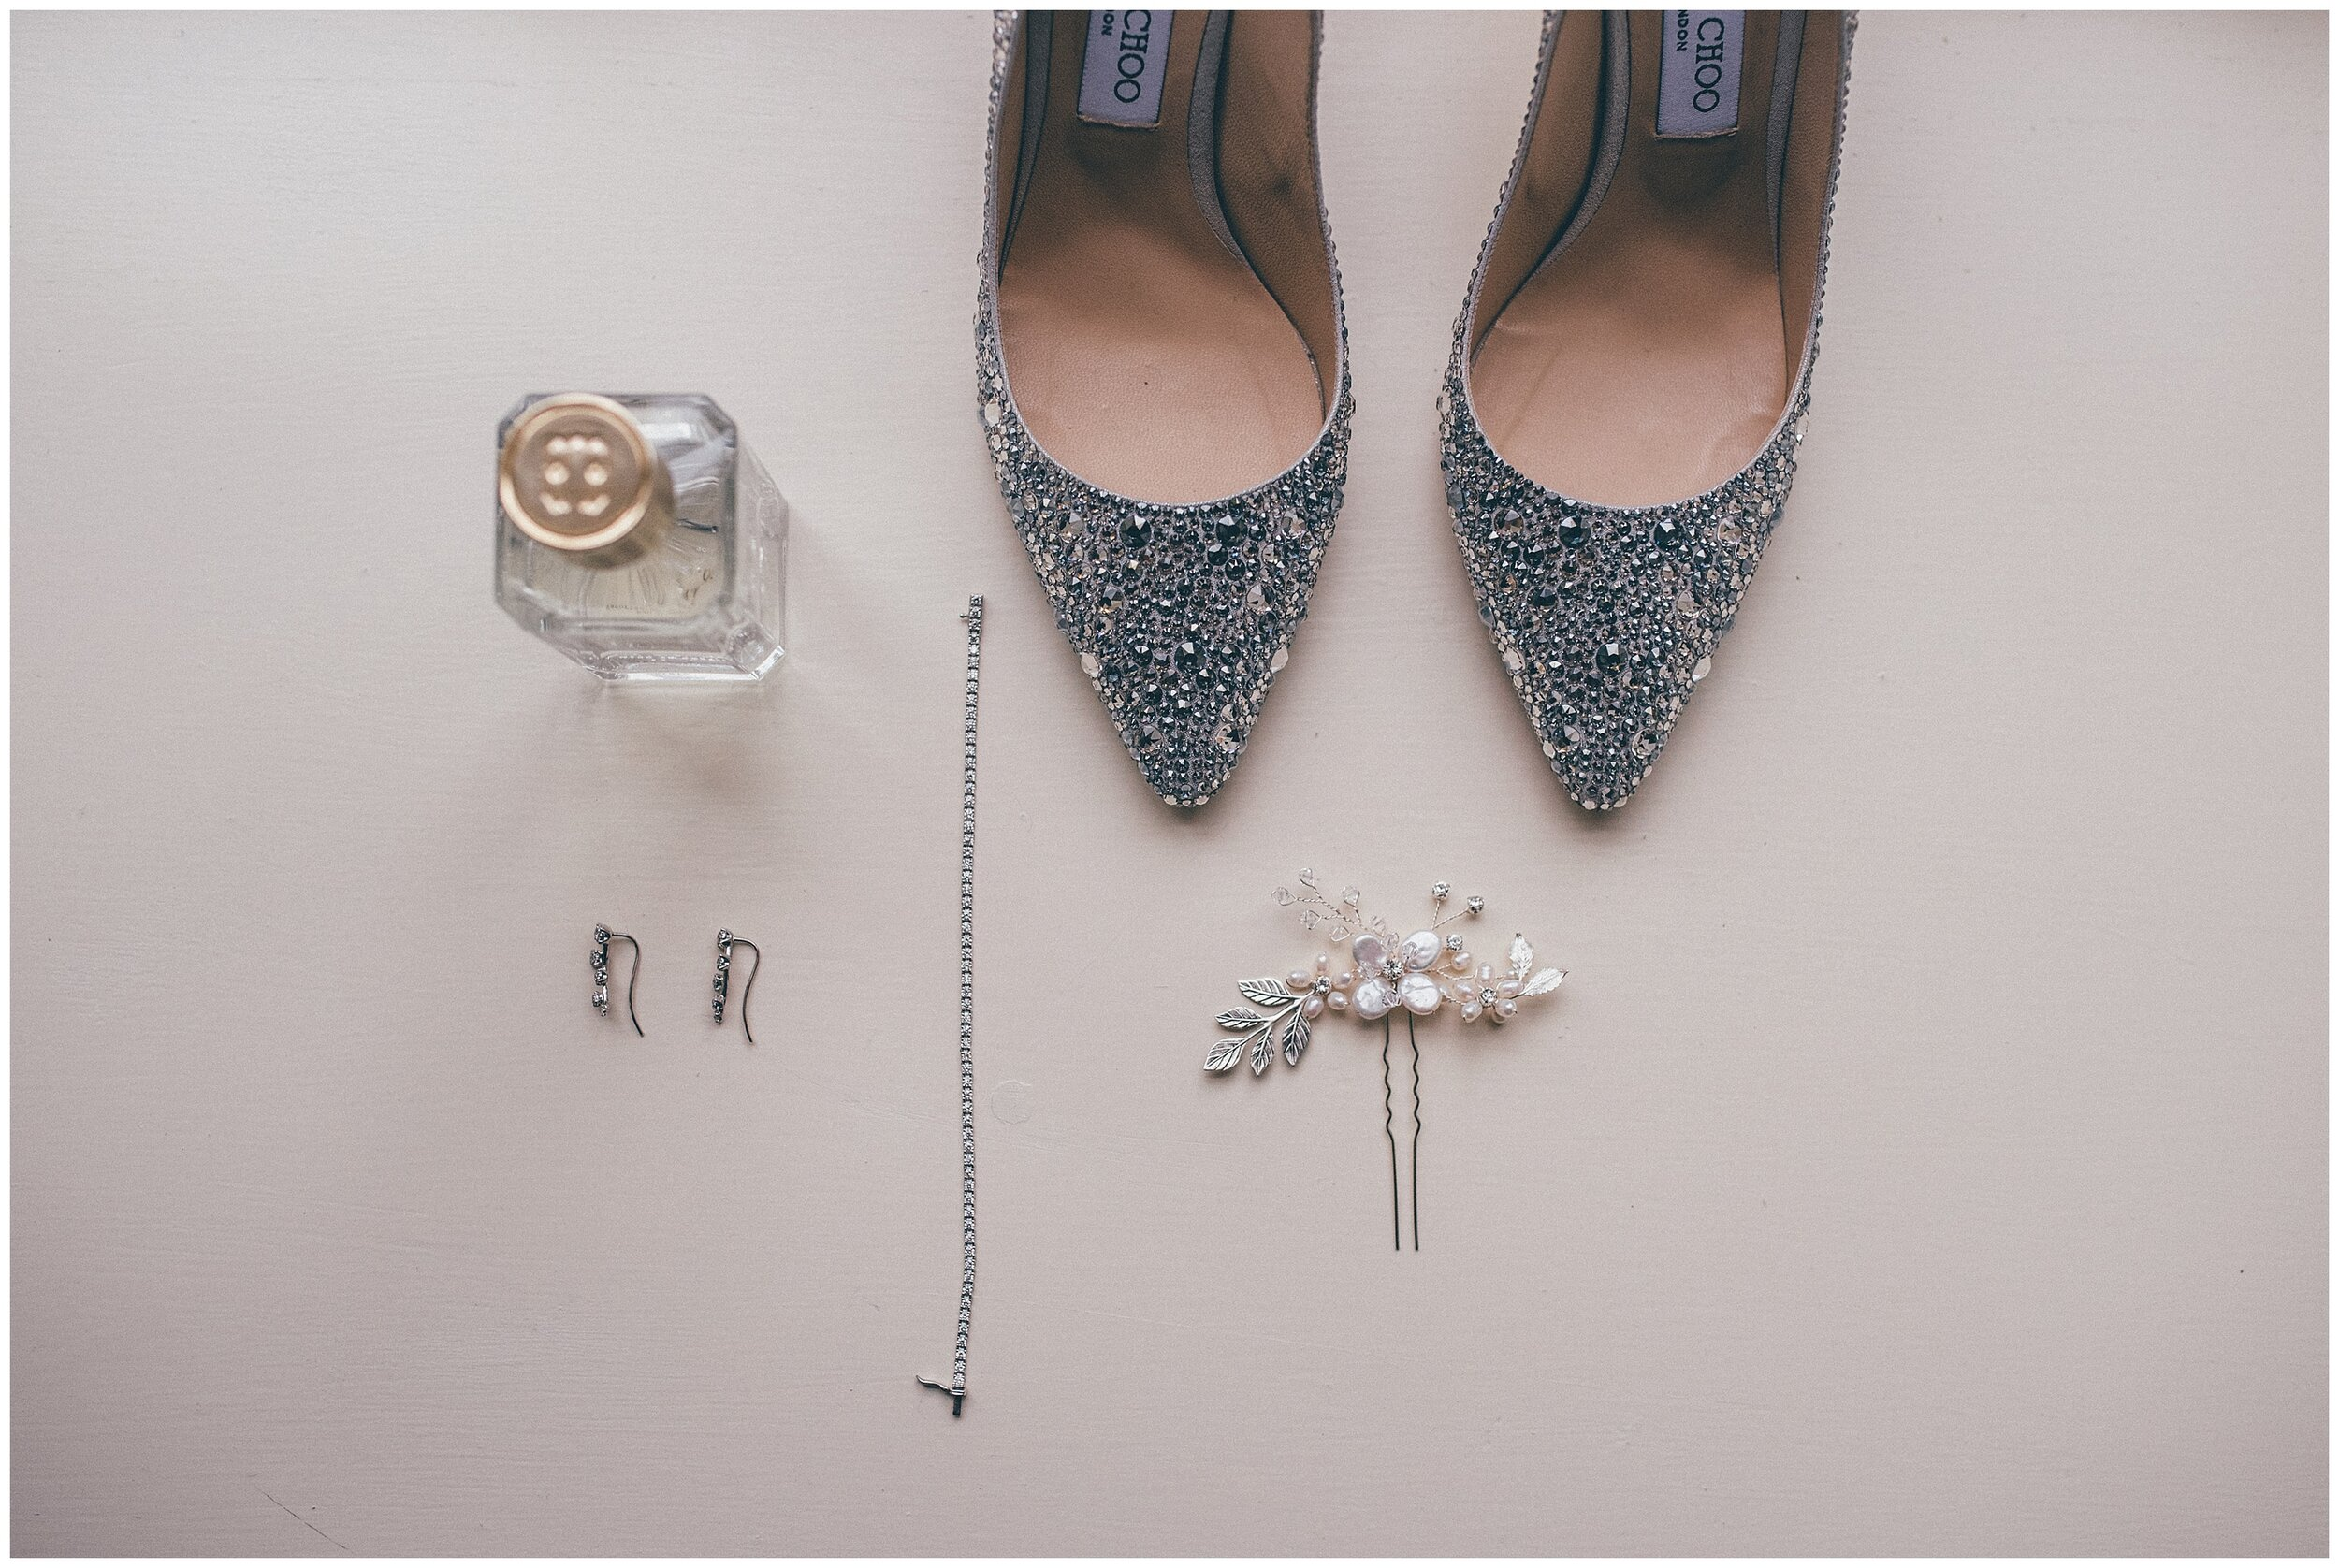 Beautiful Jimmy Choo wedding shoes and other wedding details at Lake District wedding.